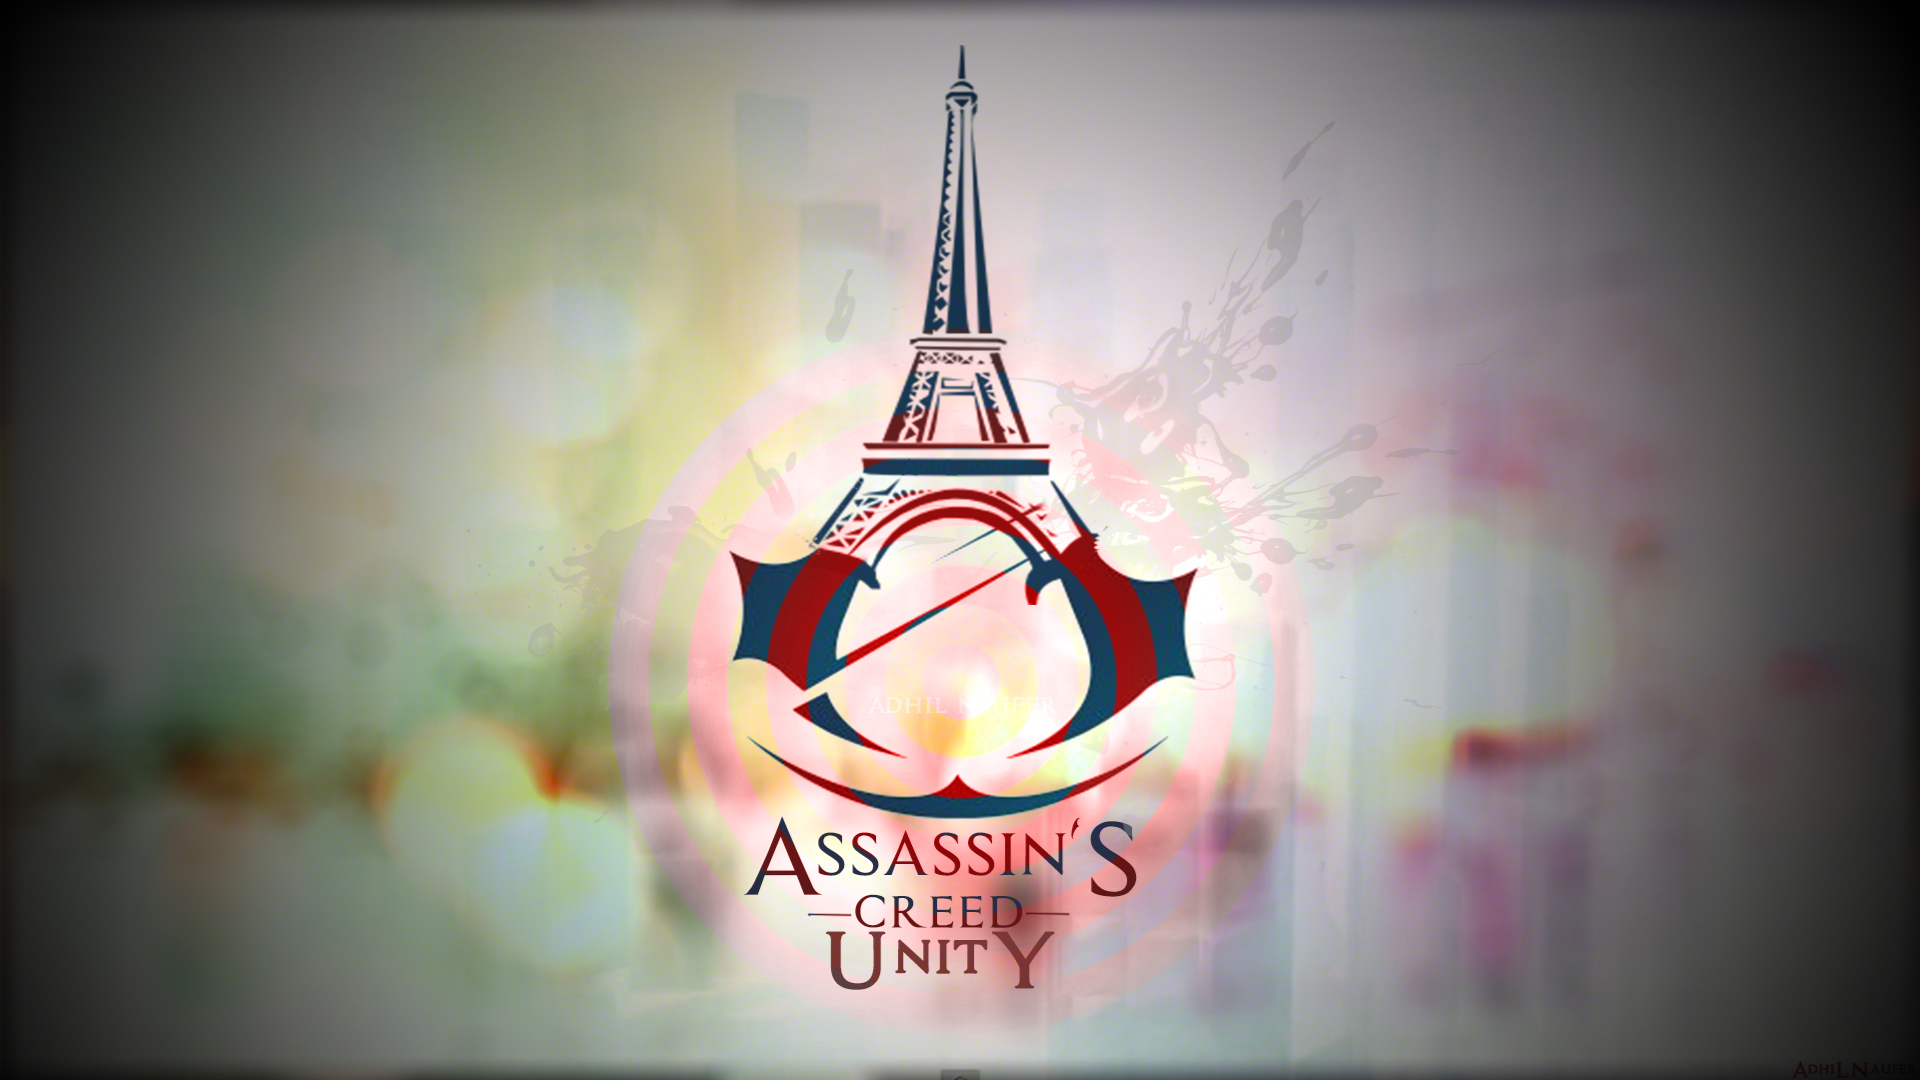 logo of assassins creed unity game hd 1920x1080 1080p wallpaper and 1920x1080